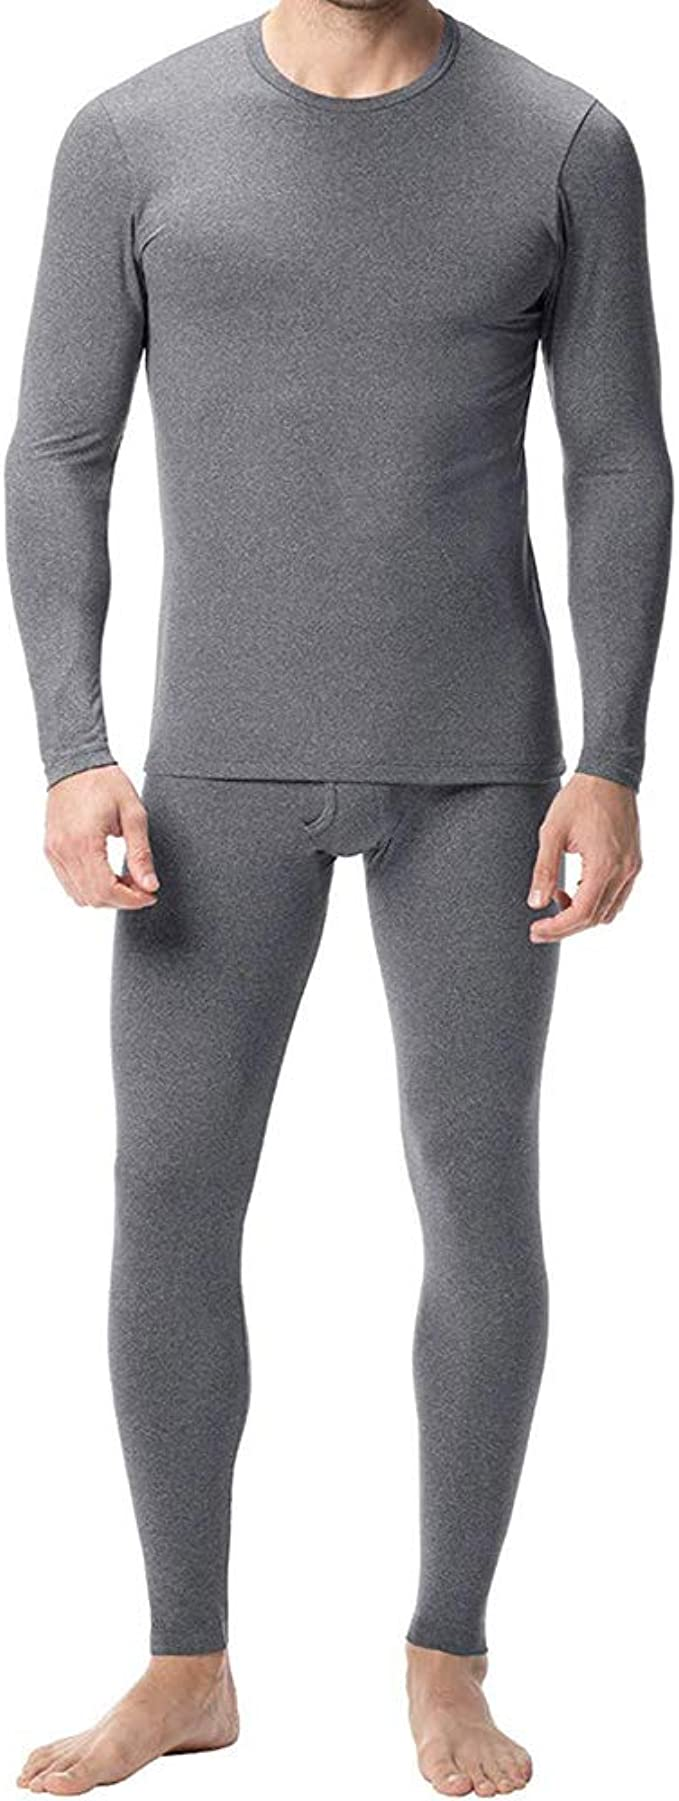 Men/'s Cotton Fleece Thermal Pajama 2 Piece Set Sizes M-2XL New